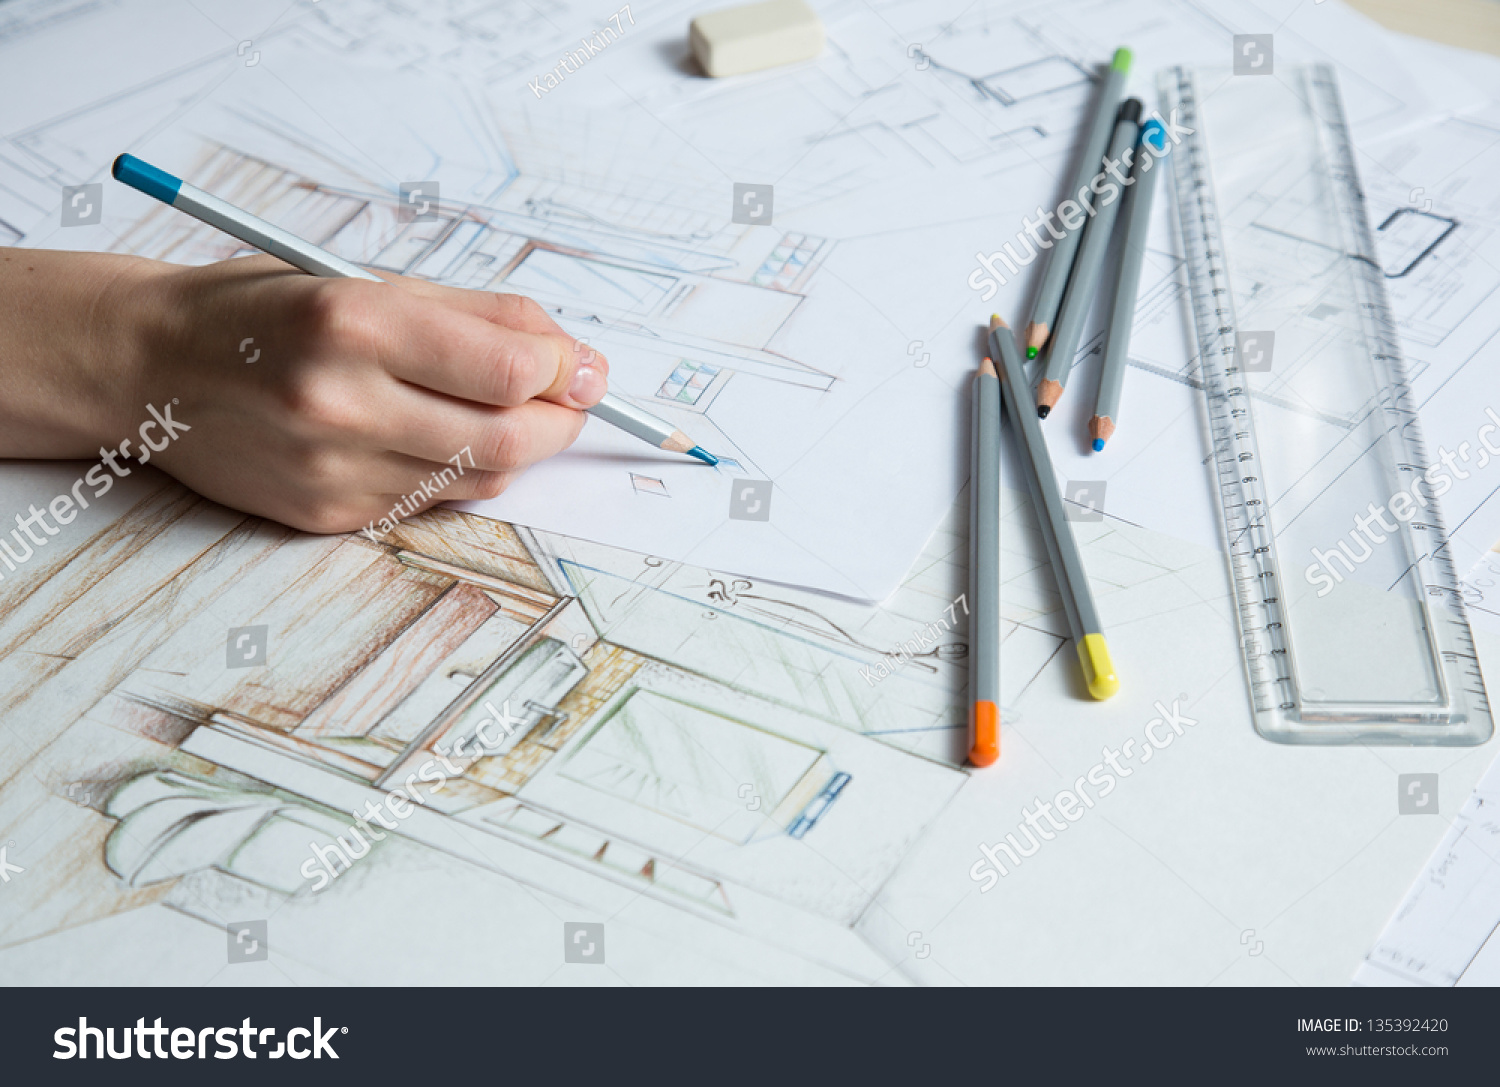 Interior designer works on hand drawing stock photo for Interior design color planner